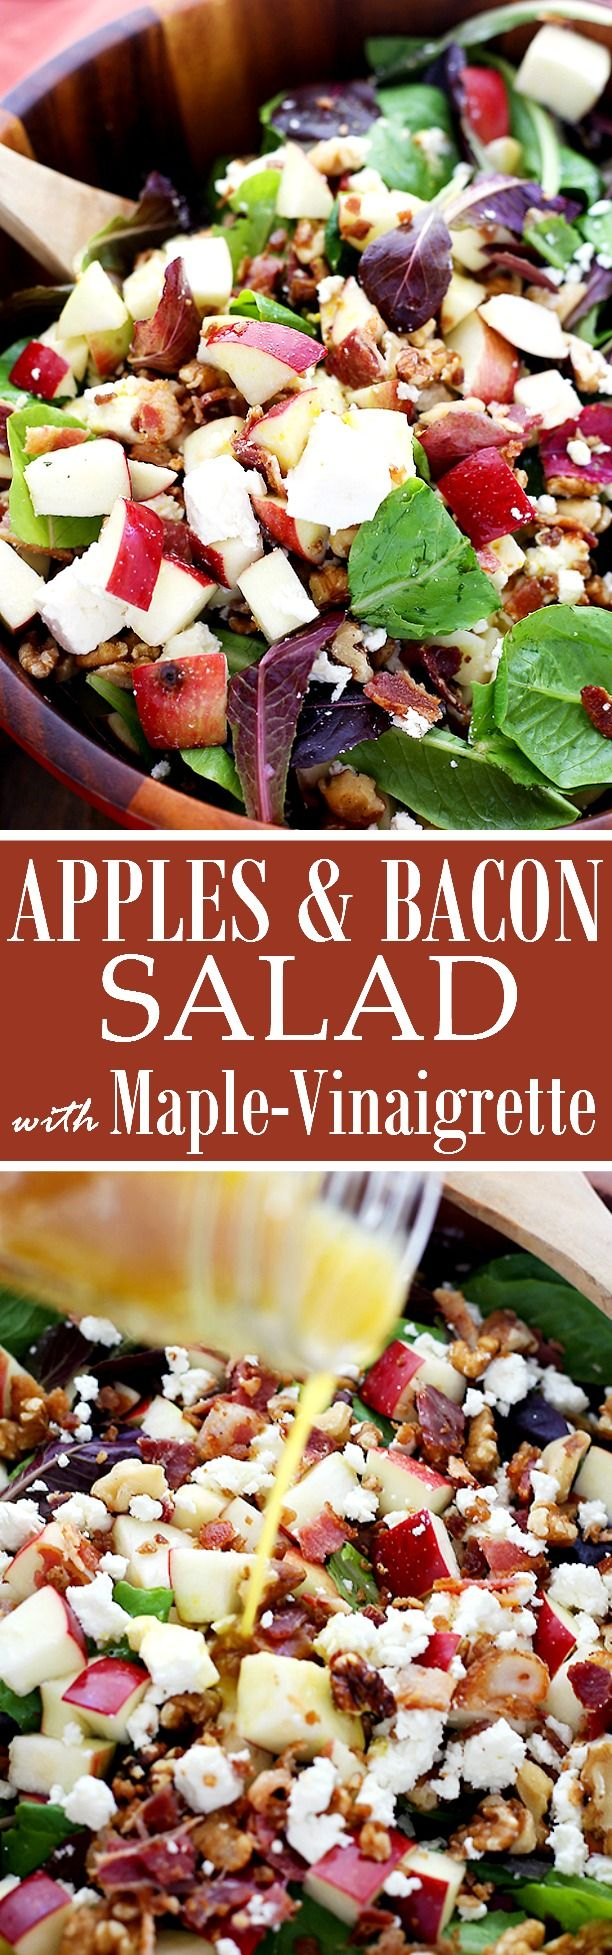 Apples and Bacon Salad with Maple-Balsamic Vinaigrette - Made with apples, bacon, feta cheese and walnuts. This wonderful Fall-flavored salad is sweet, tangy, crunchy, and beyond delicious!